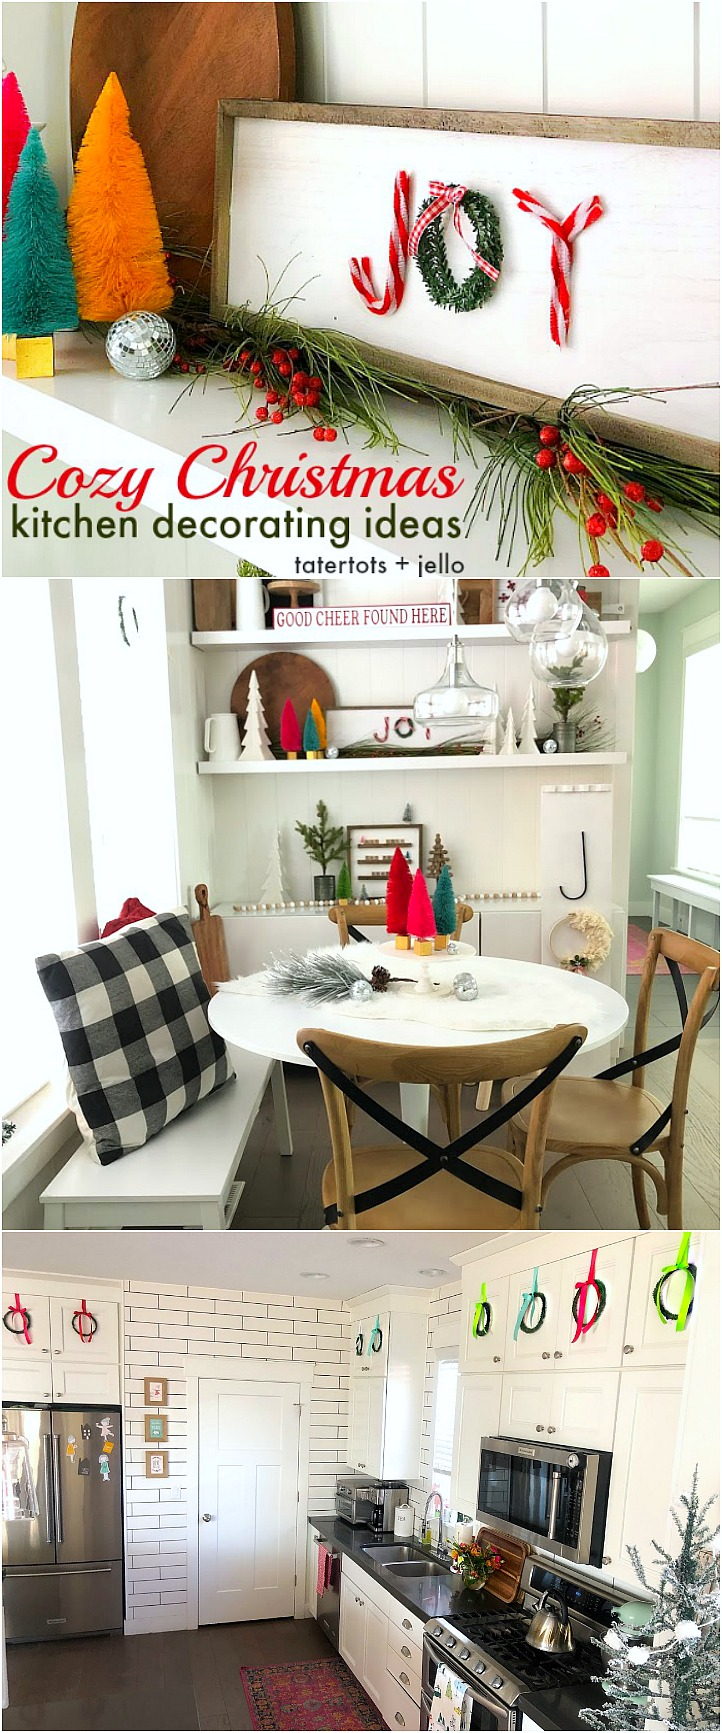 Cozy Christmas Kitchen Nook Decorating Ideas - DIY ideas